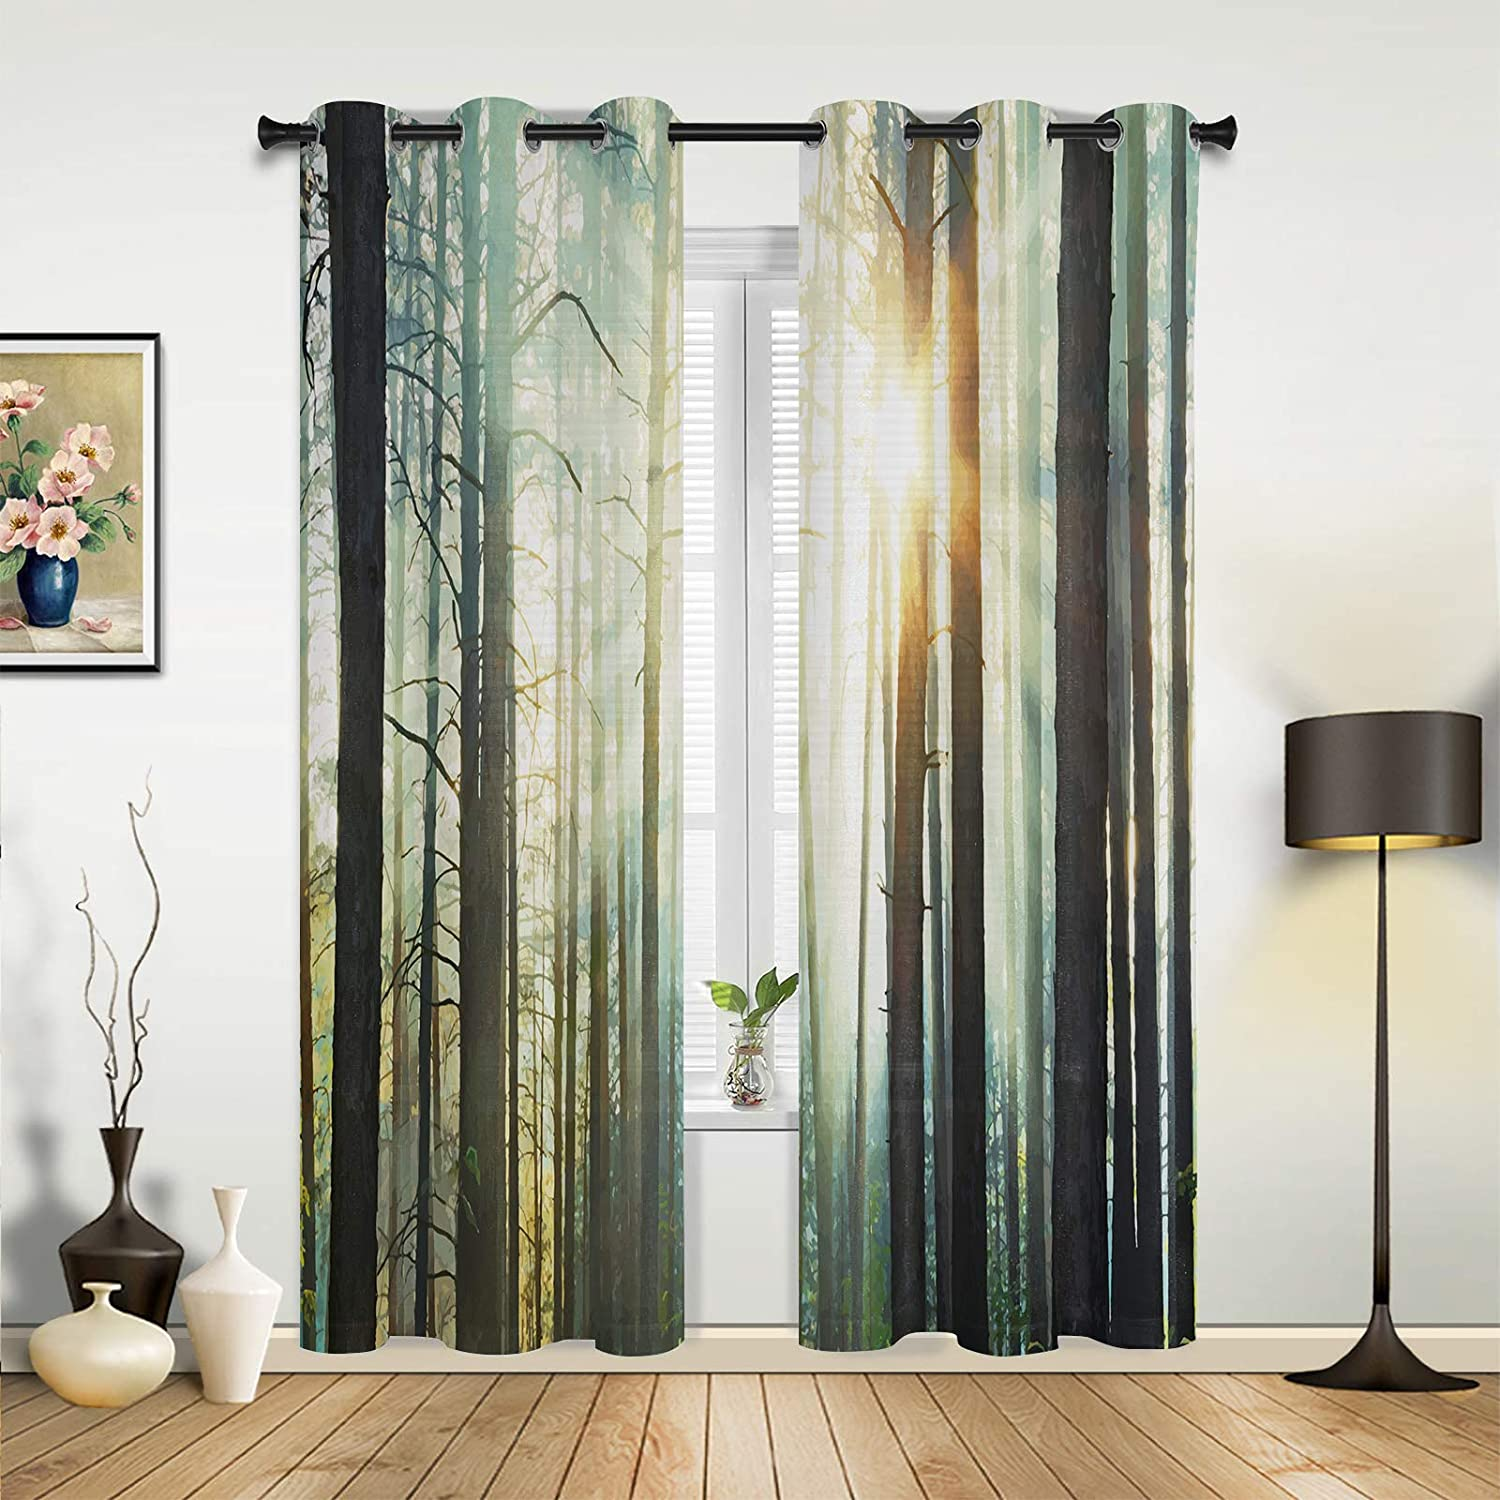 Window Challenge the lowest price Sheer Curtains for Bedroom Beautif Manufacturer direct delivery Living Room Mysterious